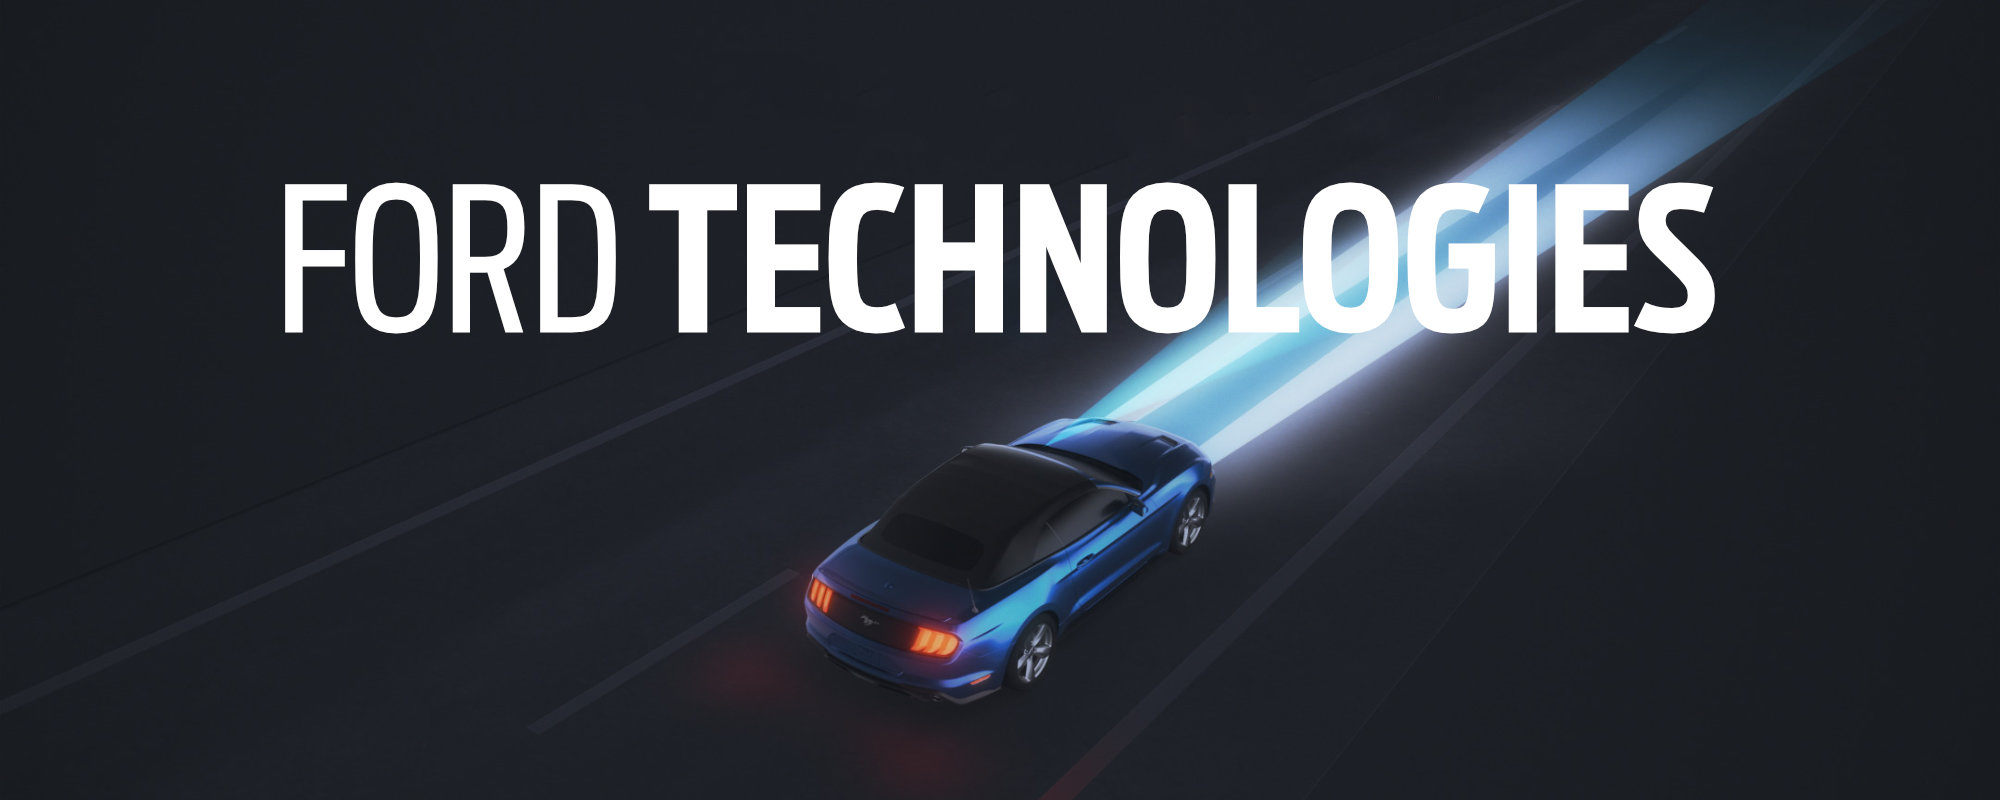 Ford Technologies